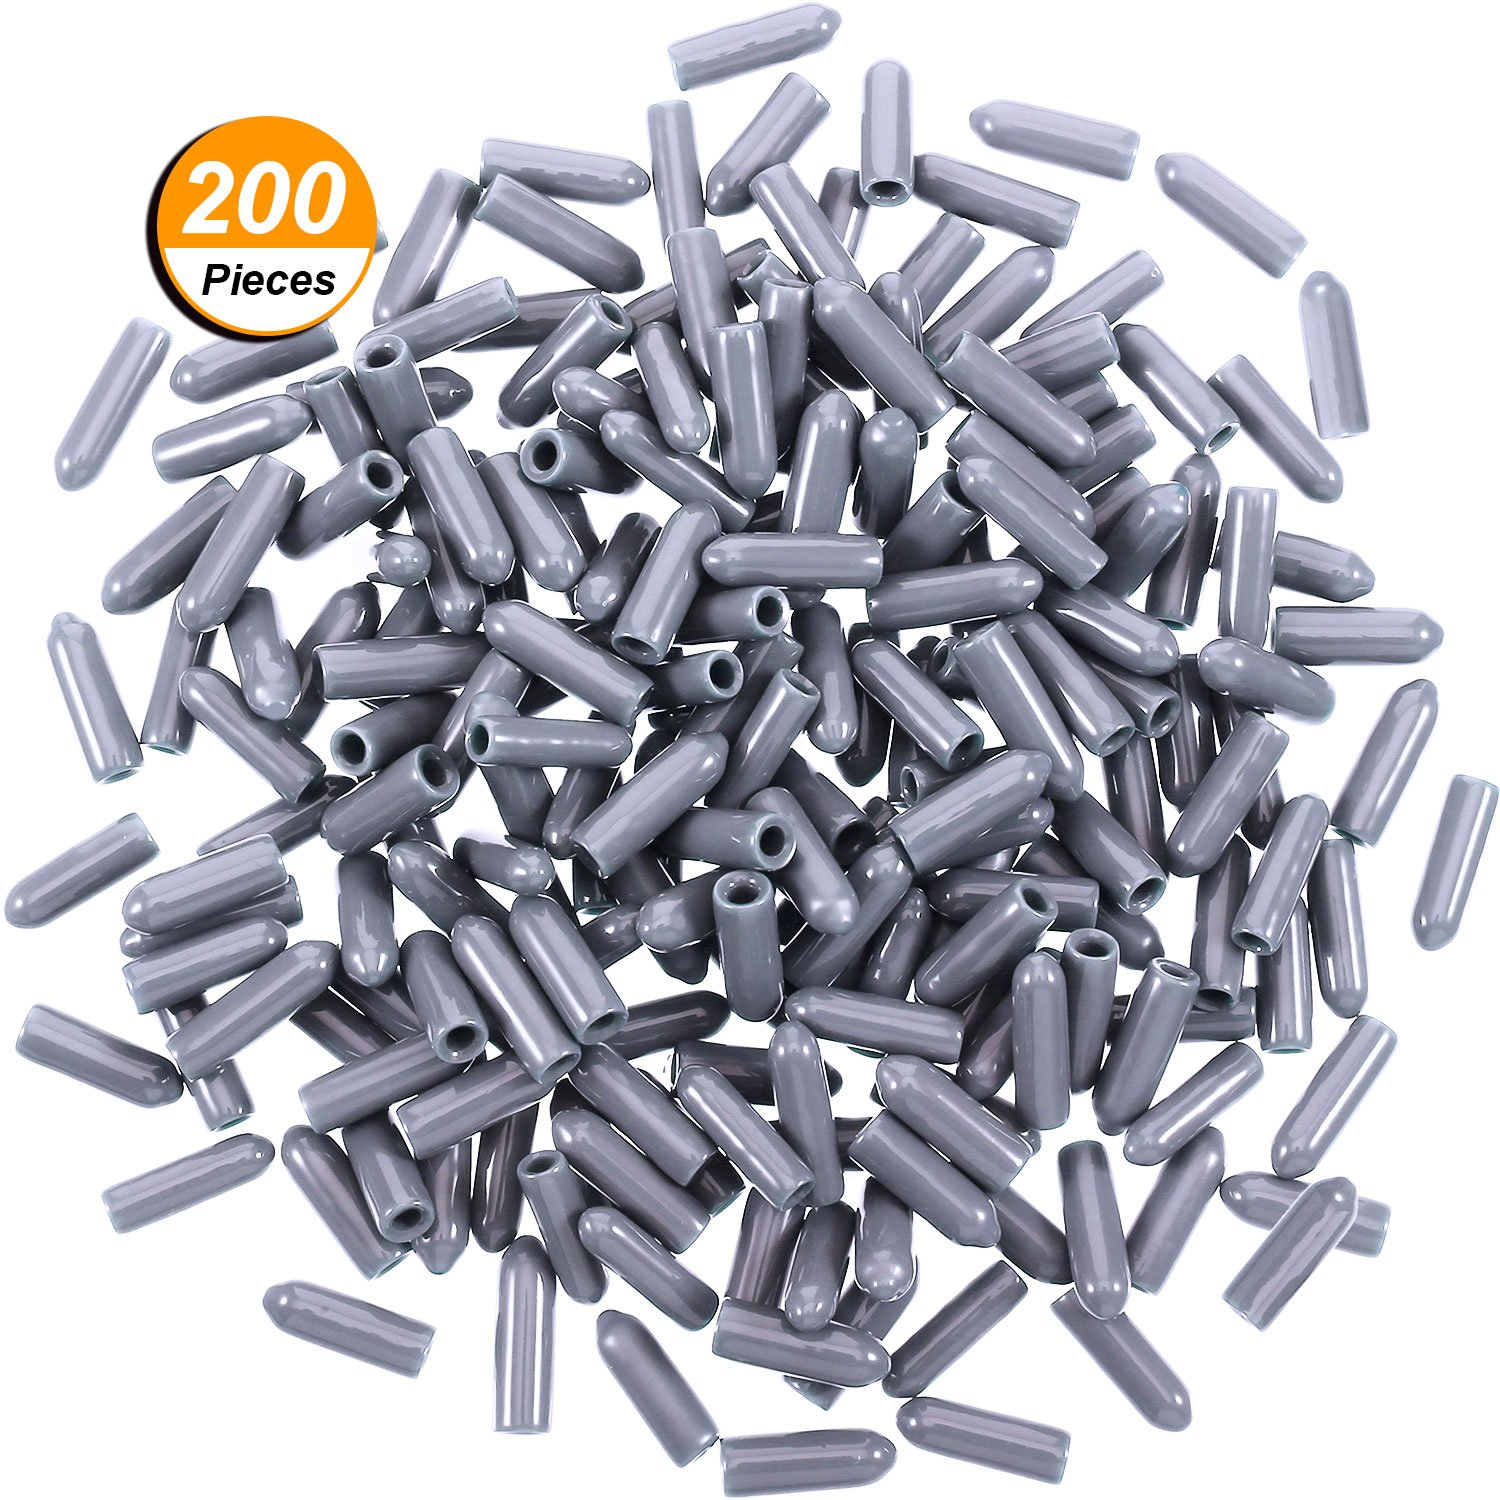 Blulu 200 Pieces Universal PVC Dishwasher Prong Rack Tip Tine Cover Caps, Flexible Round End Caps Shelf Organizer Tip Caps Wire Thread Protector Cover, Just Push On to Repair, 15 mm Long (Deep Grey)